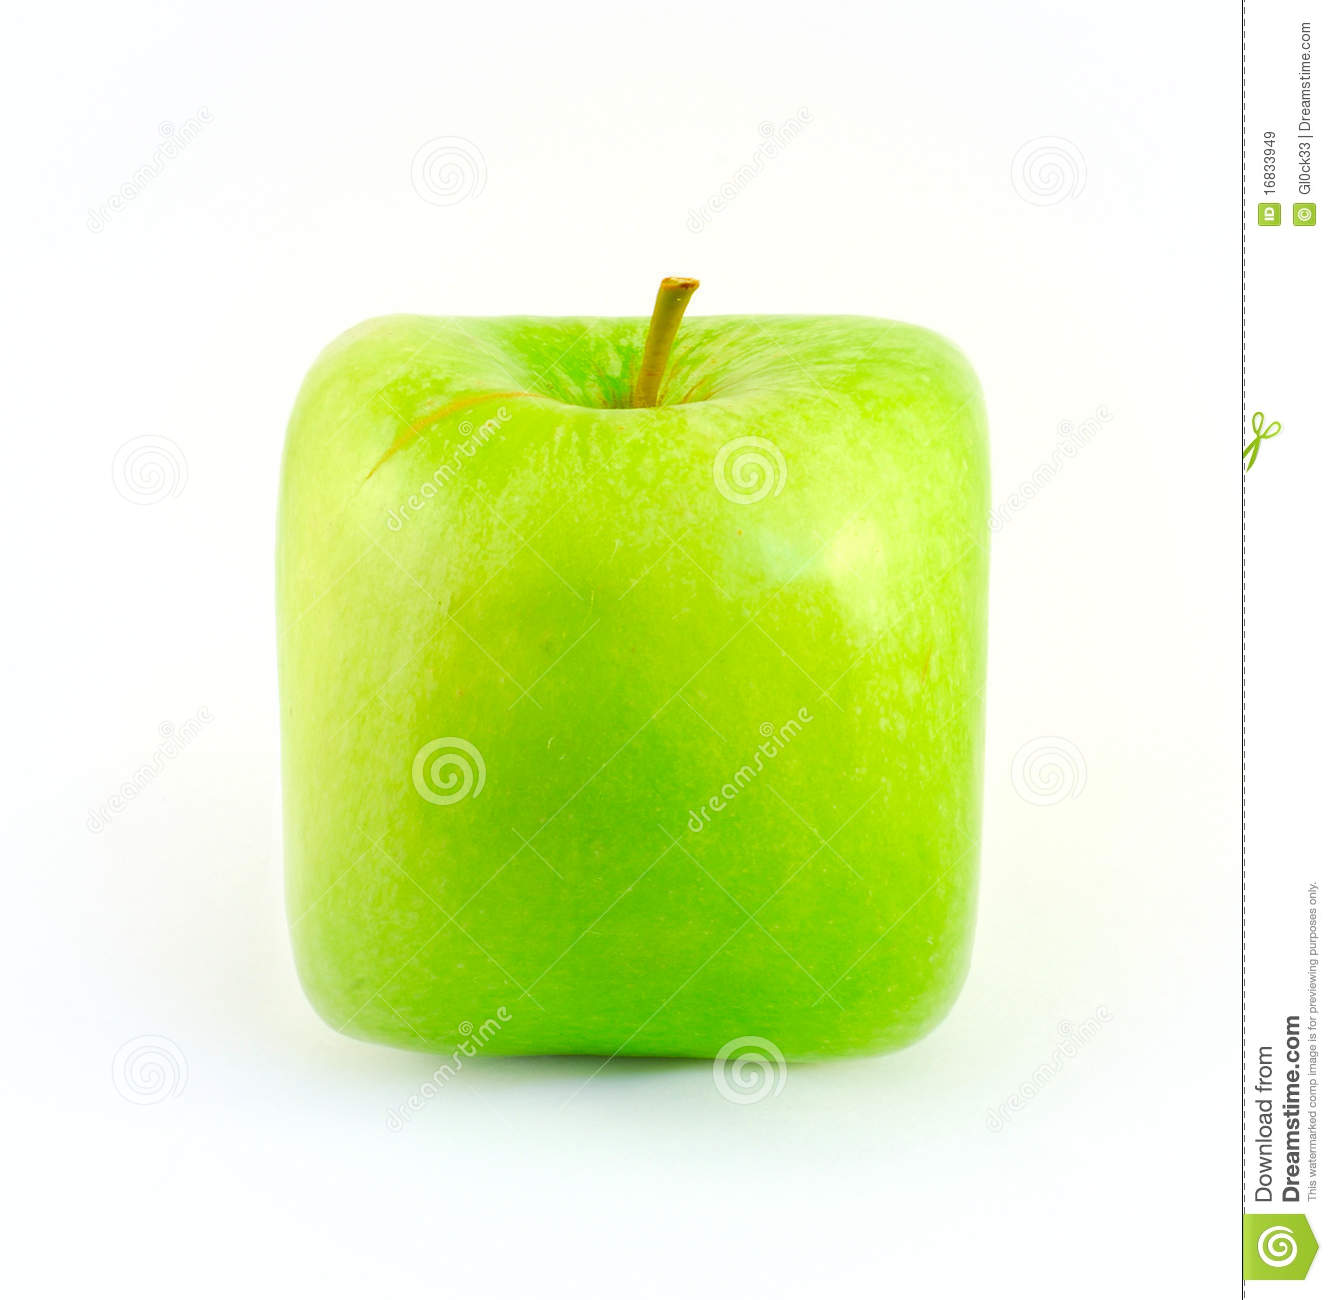 Square Apple Royalty Free Stock Images - Image: 16833949